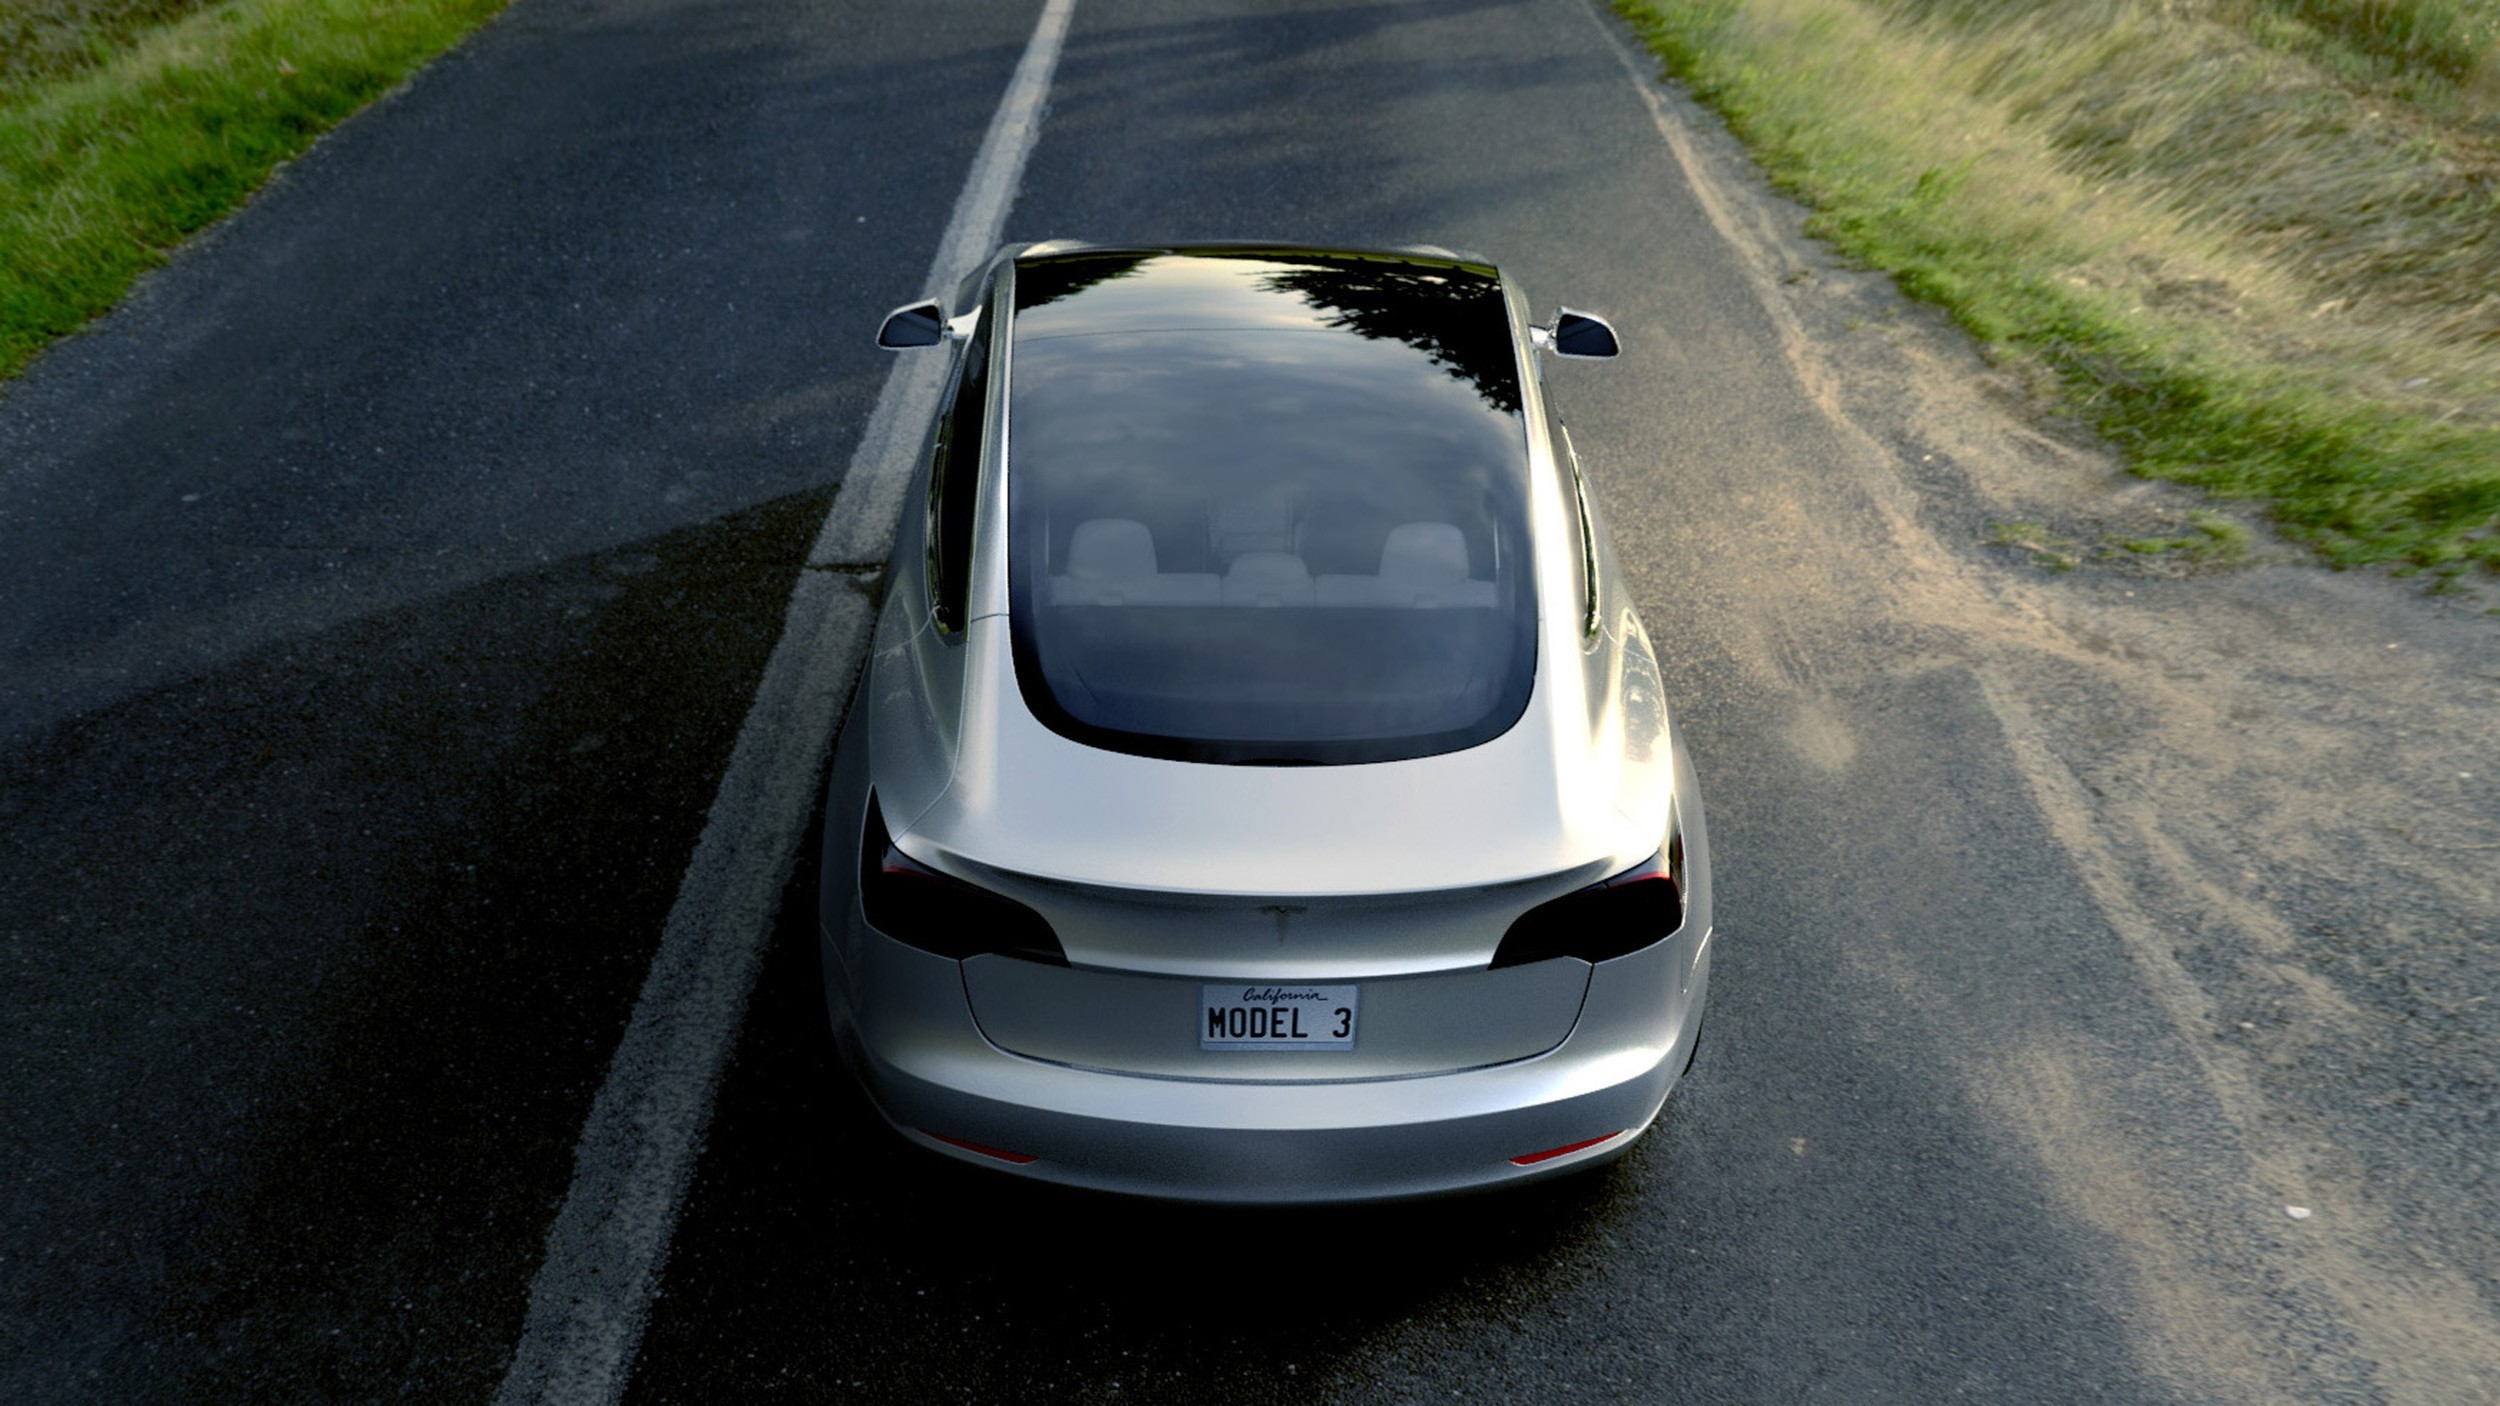 Tesla delivers 499 550 vehicles in 2020, just shy of target